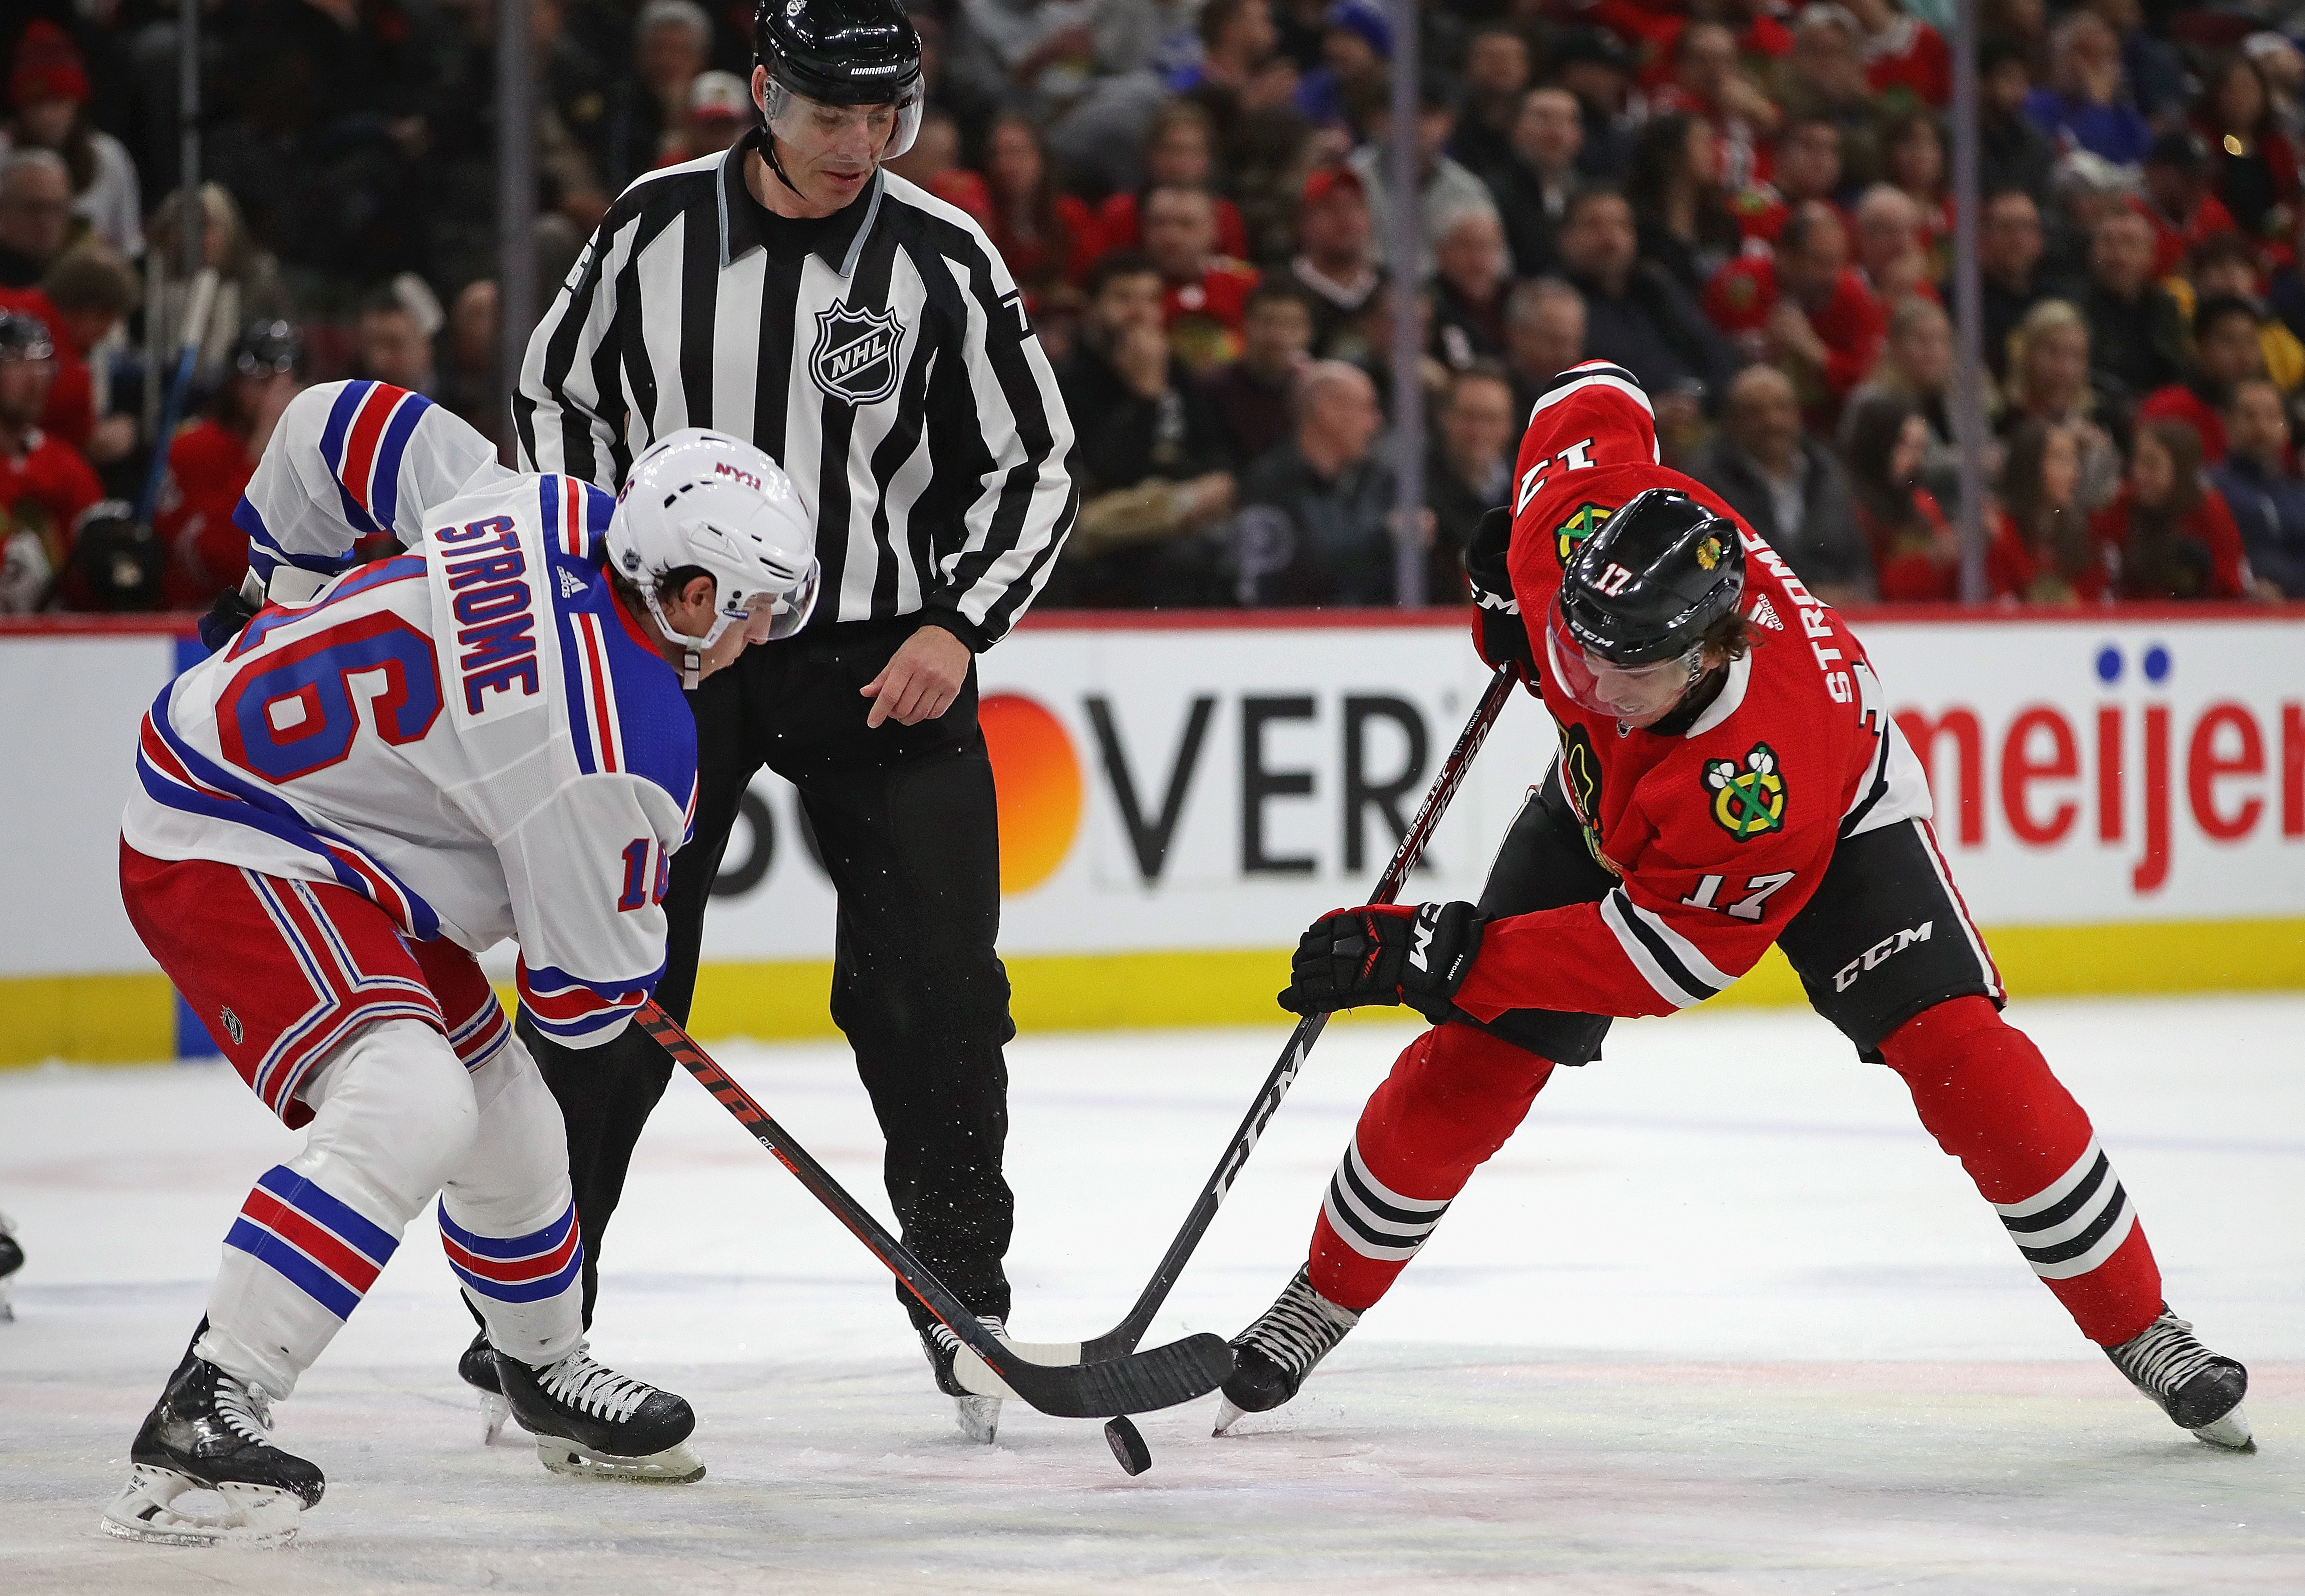 Brothers Ryan Strome (left, Rangers) and Dylan Strome (right, Blackhawks) fittingly squared off in the opening faceoff Wednesday.